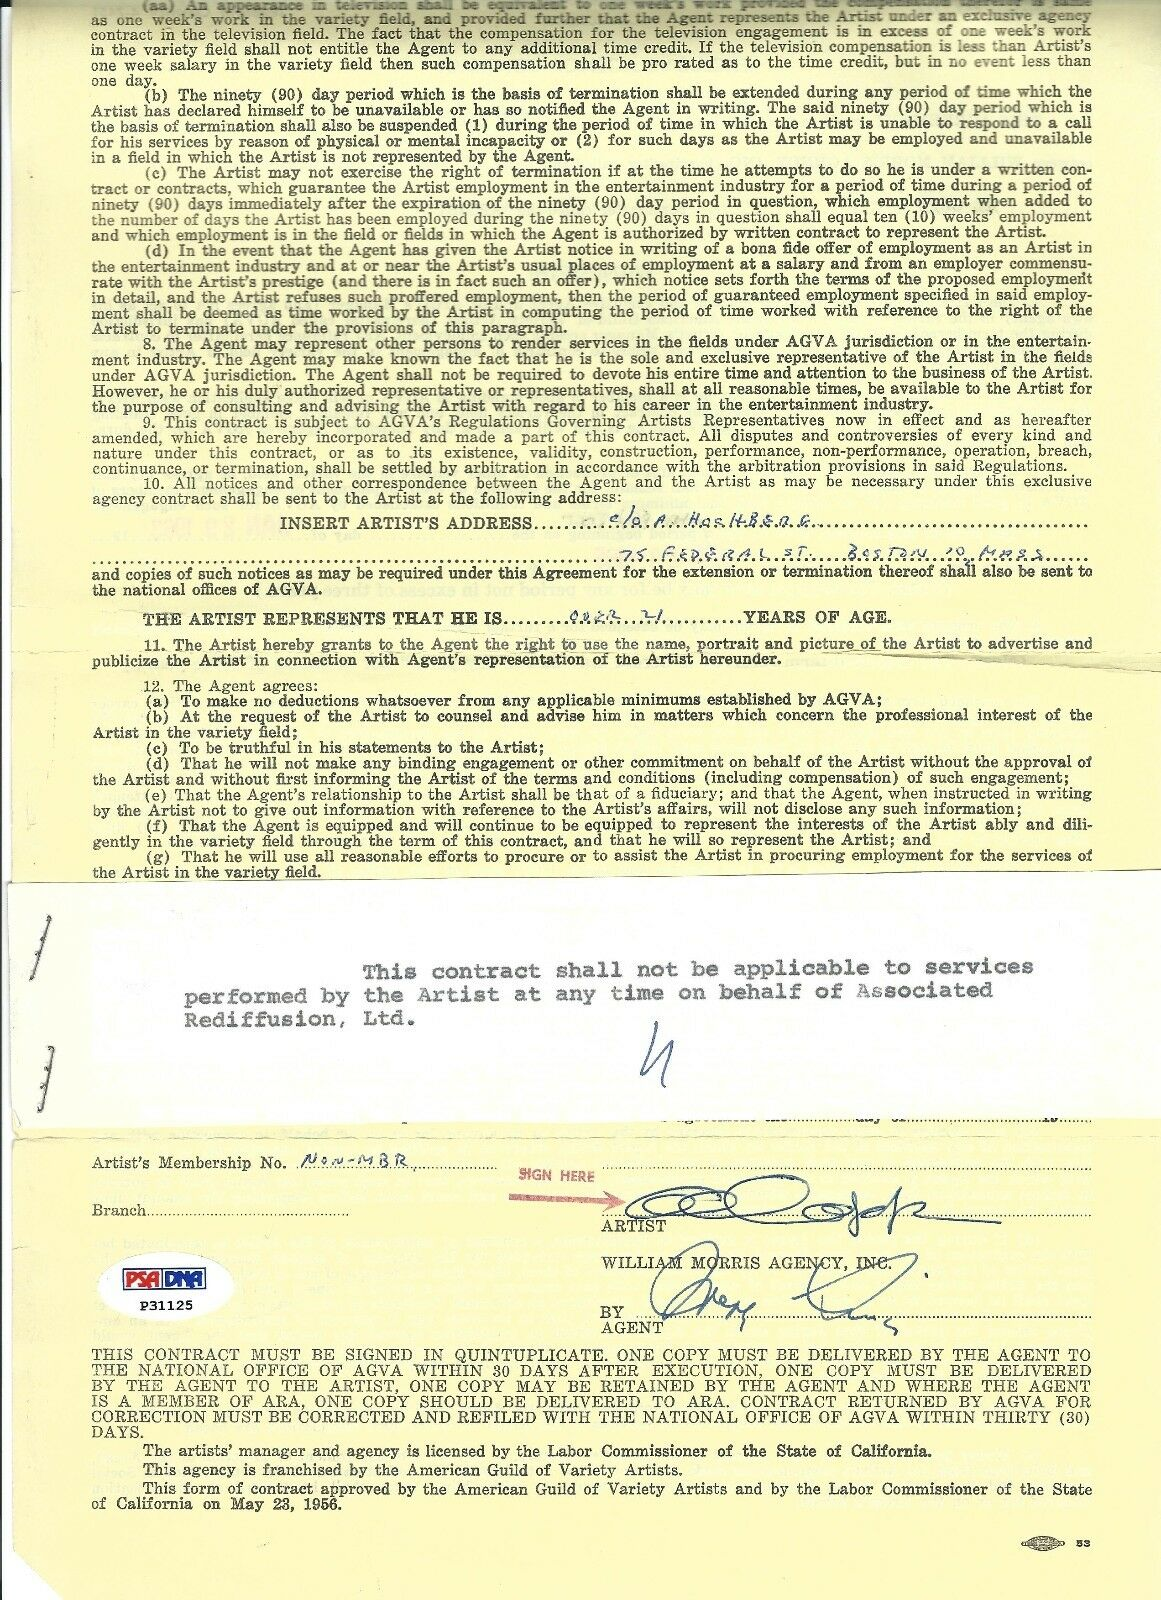 Al Capp Signed Exclusive William Morris Agency Contract Psa P31125